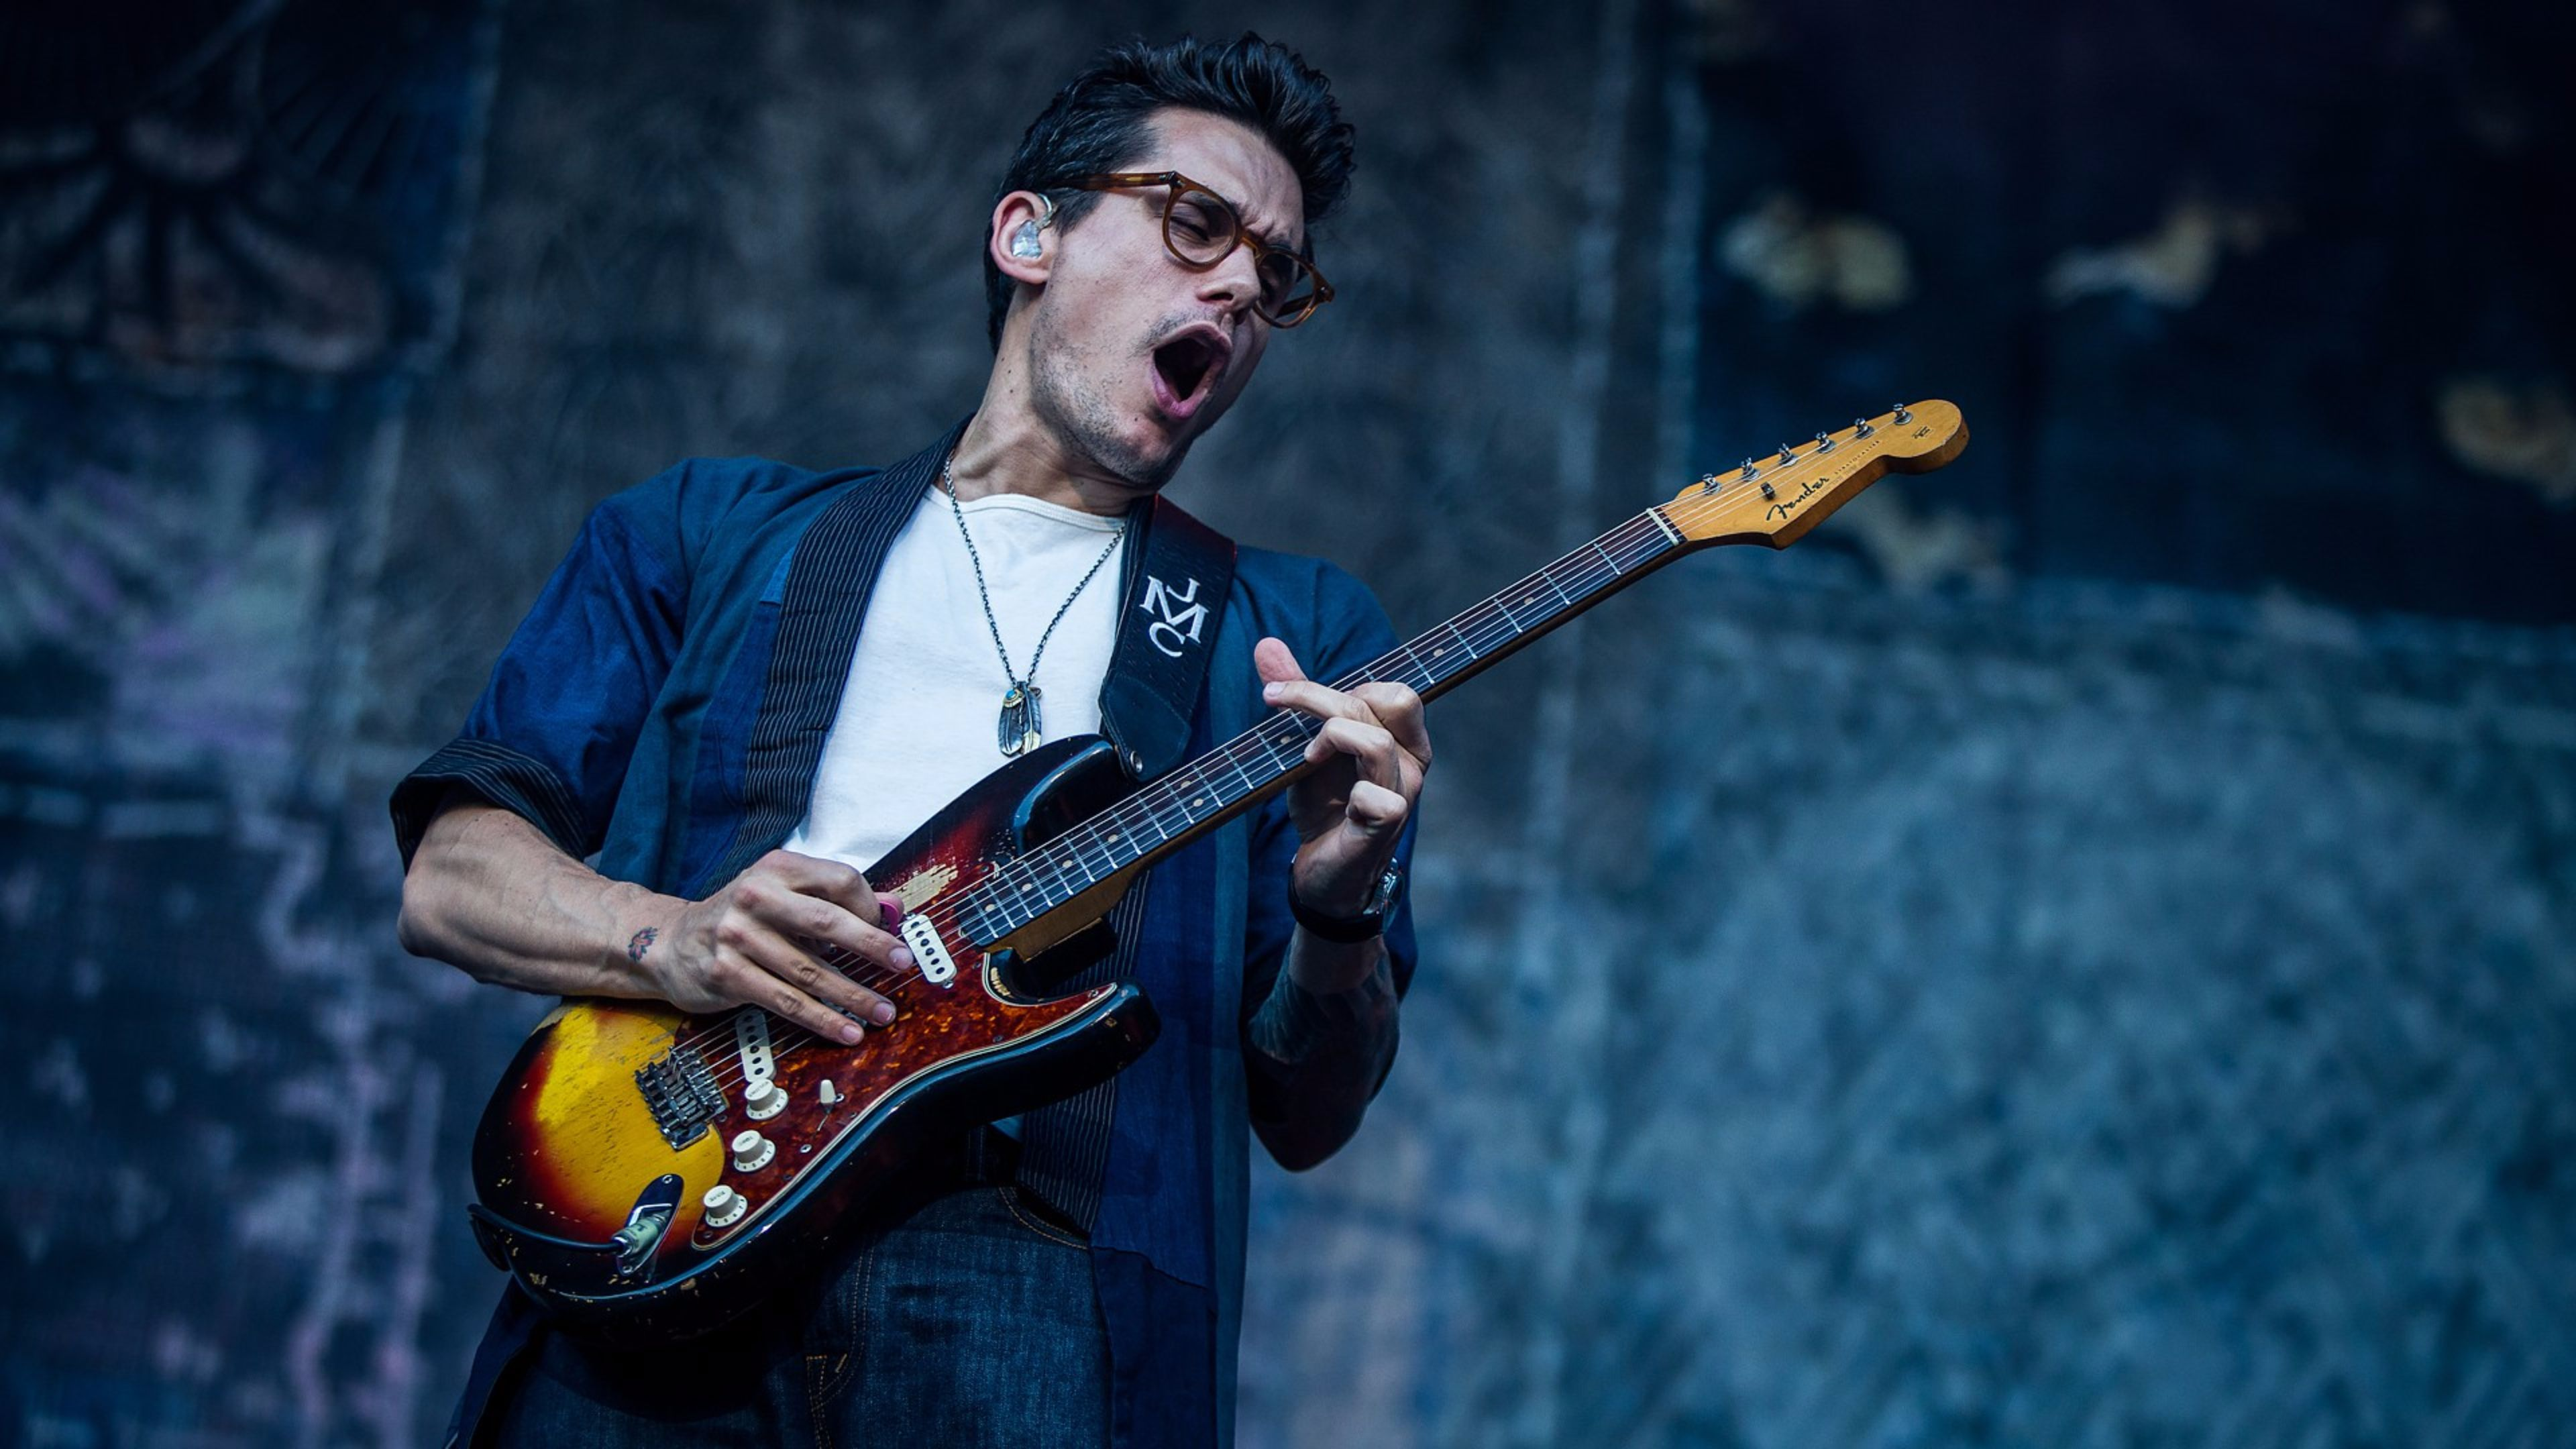 john mayer performing wide wallpaper 59571